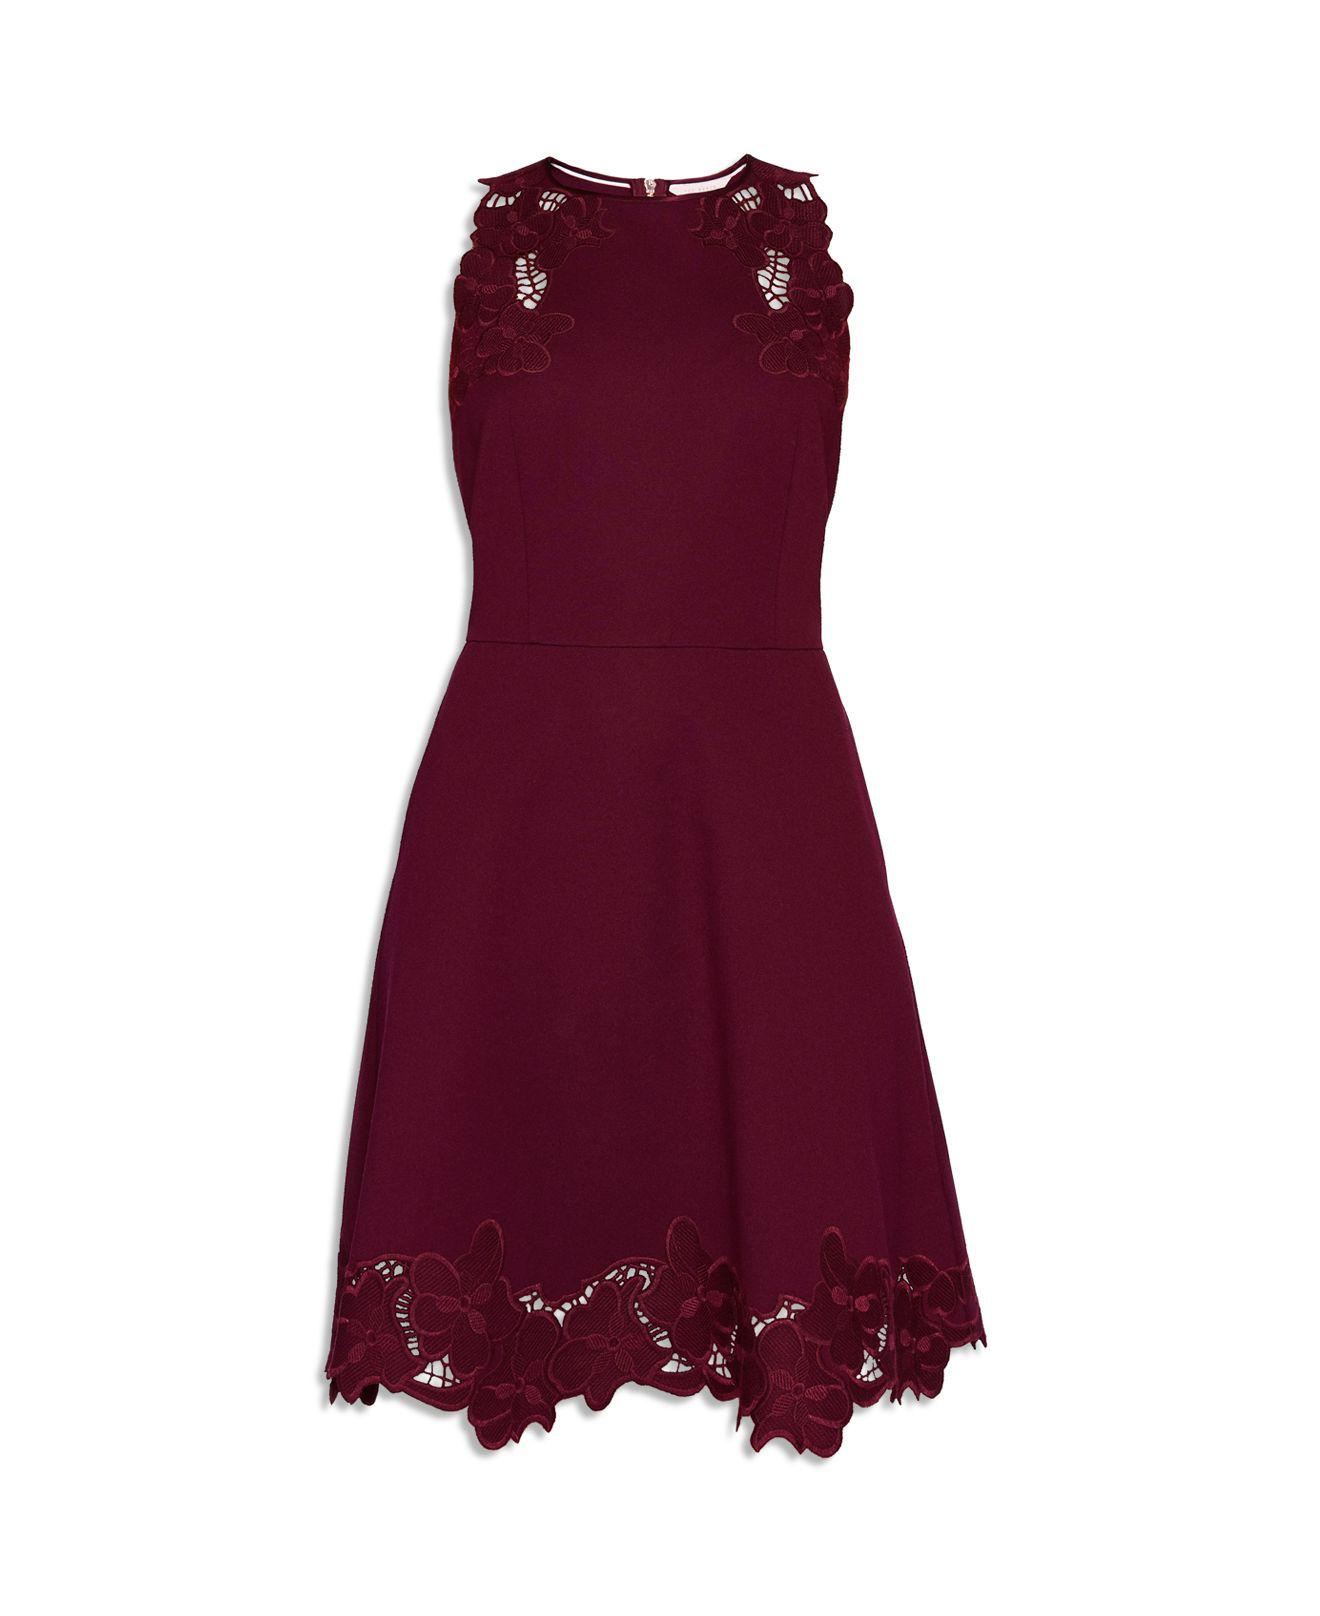 b01448e04e Lyst - Ted Baker Emmona Embroidered Skater Dress in Purple